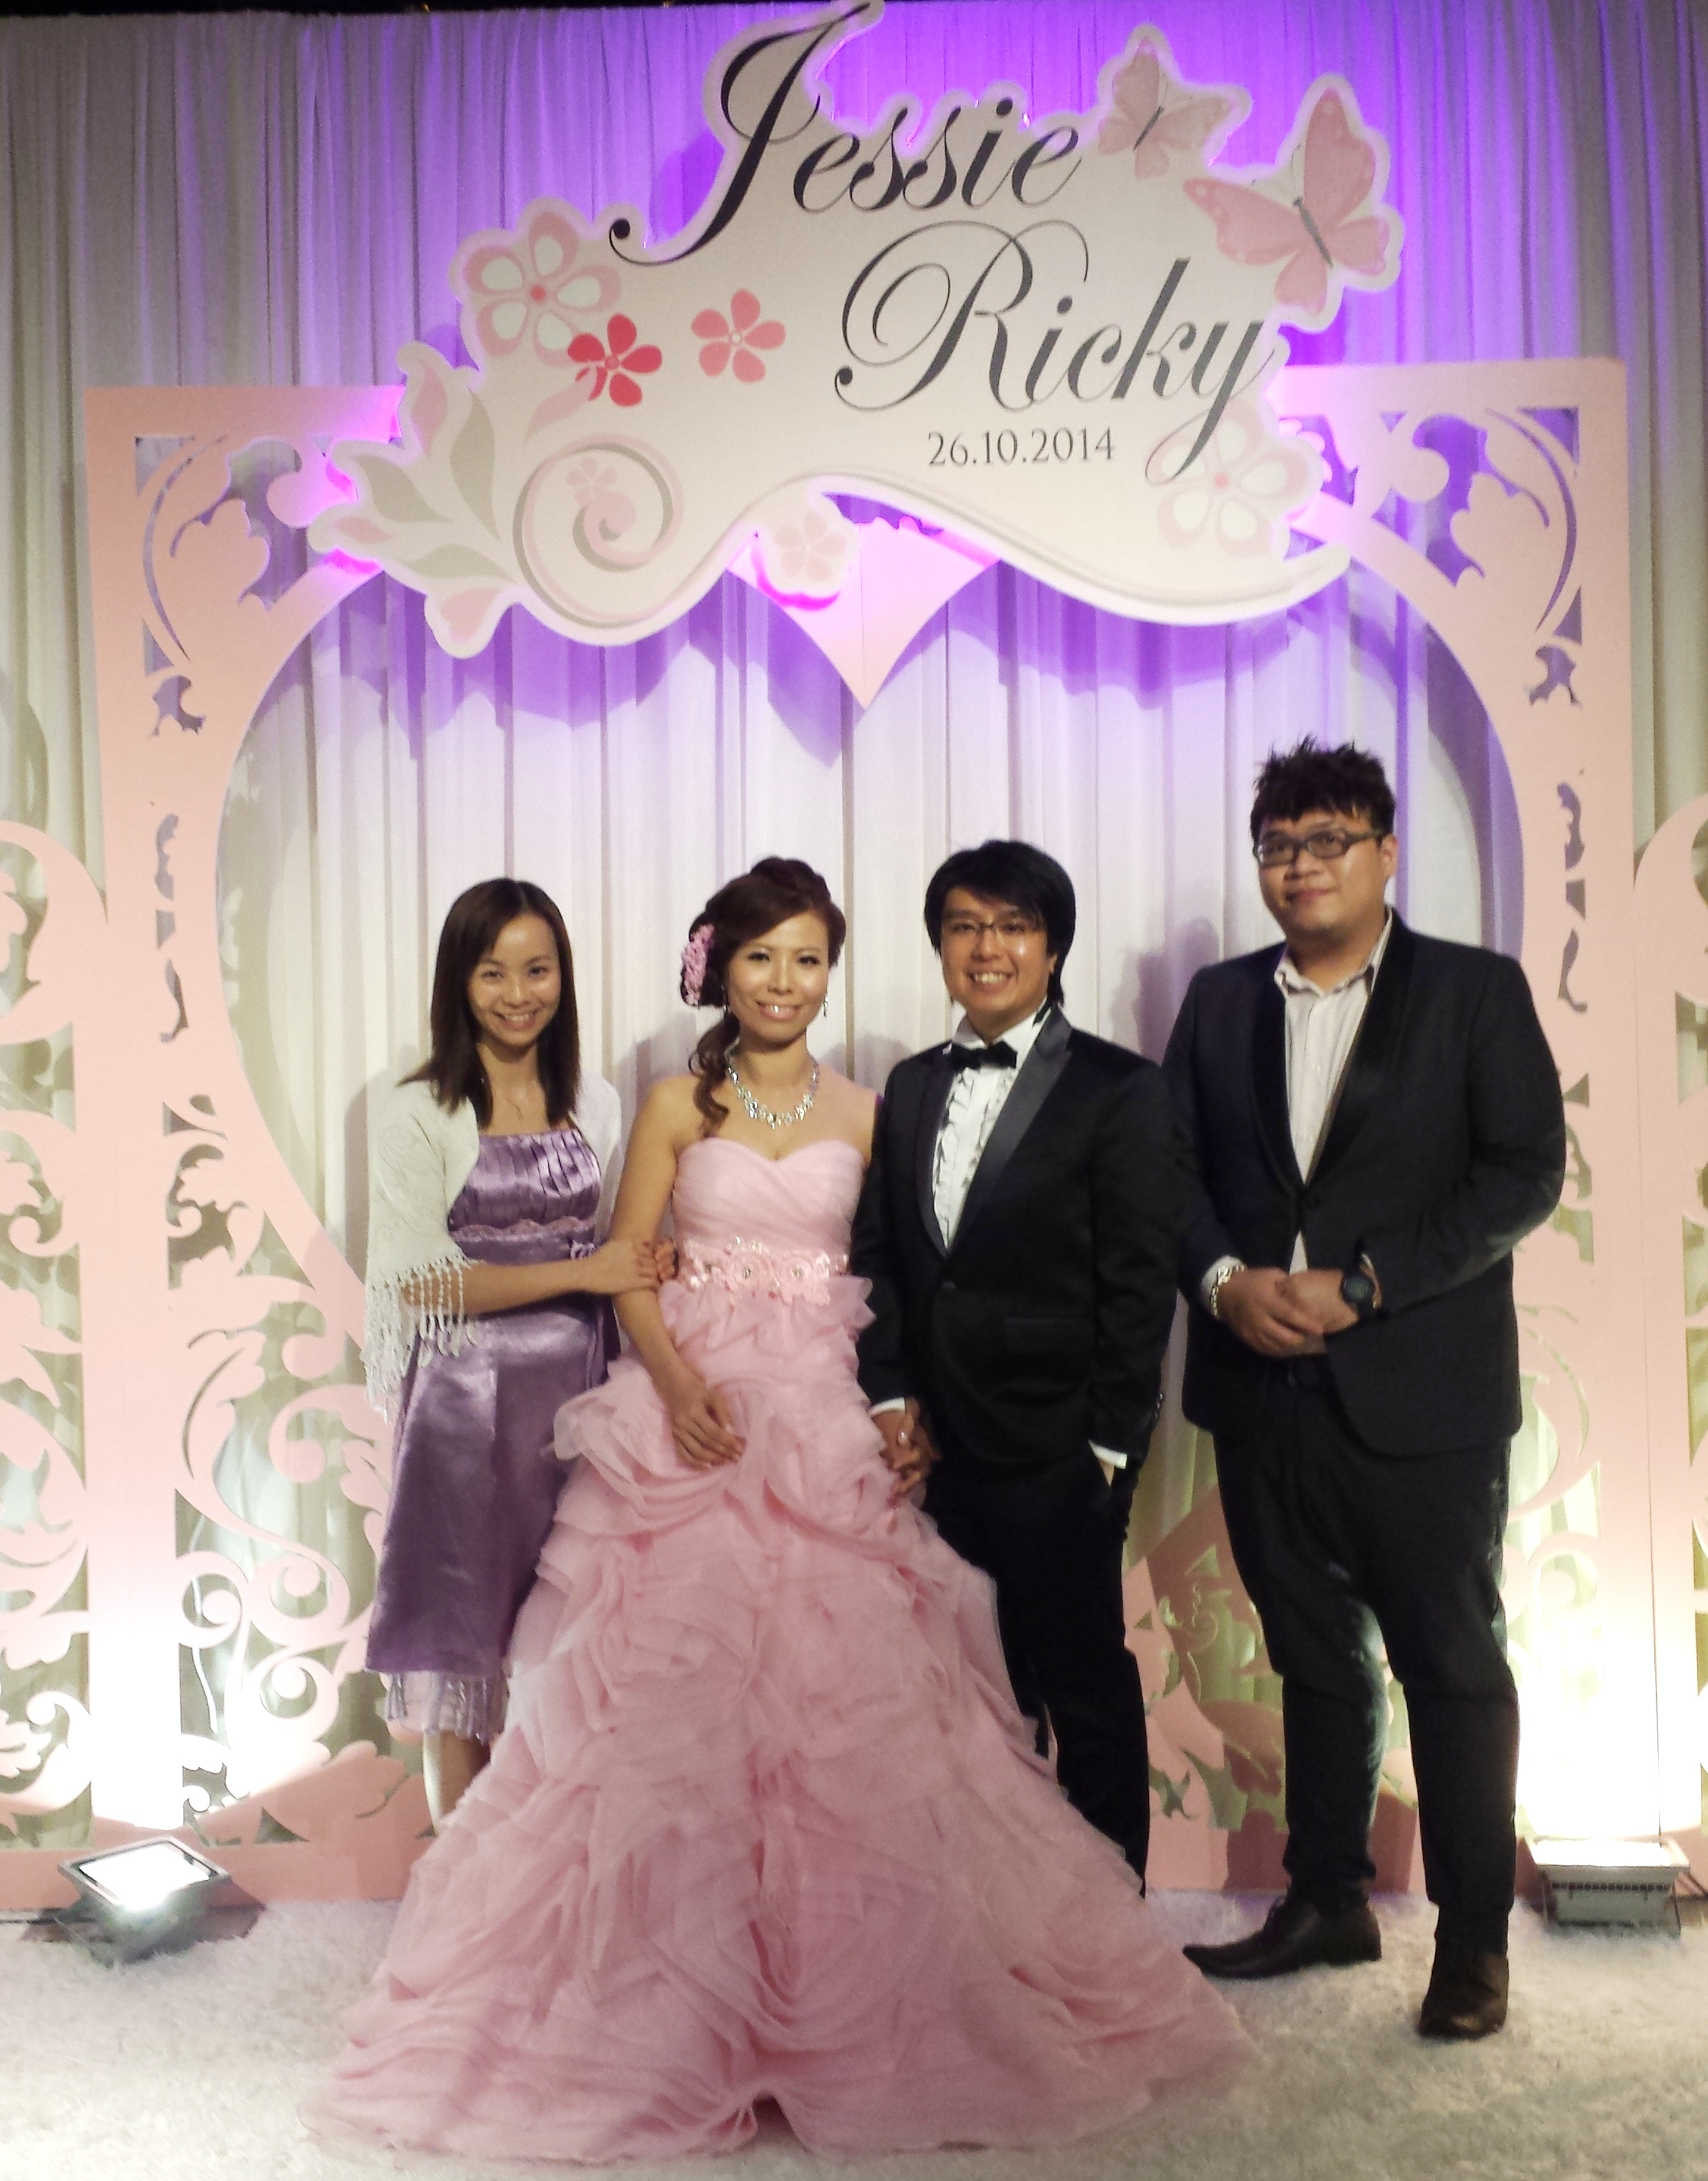 Ricky leung wedding